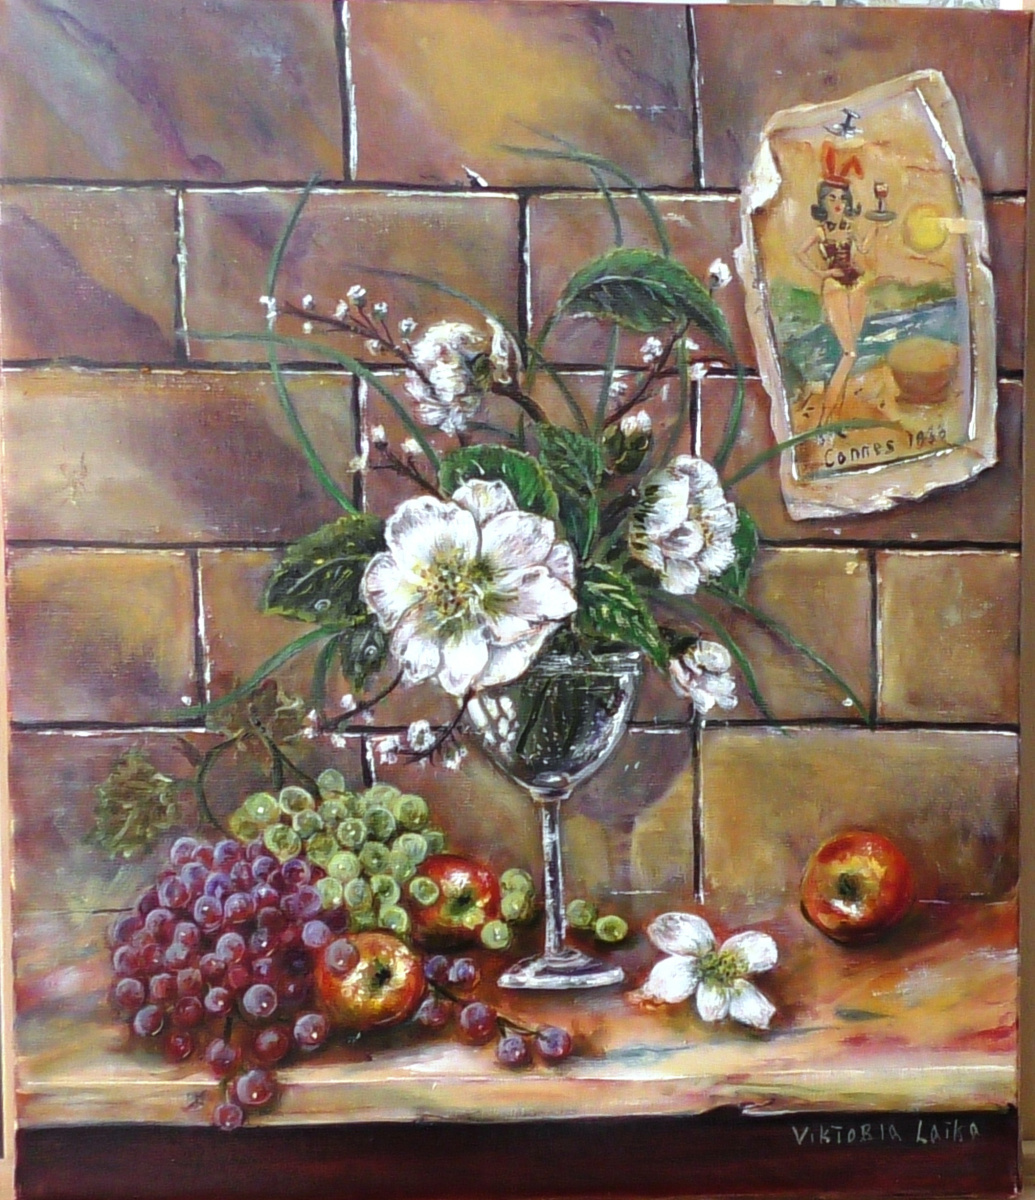 Victoria Latka. AUTHOR'S STILL LIFE WITH WHITE FLOWERS